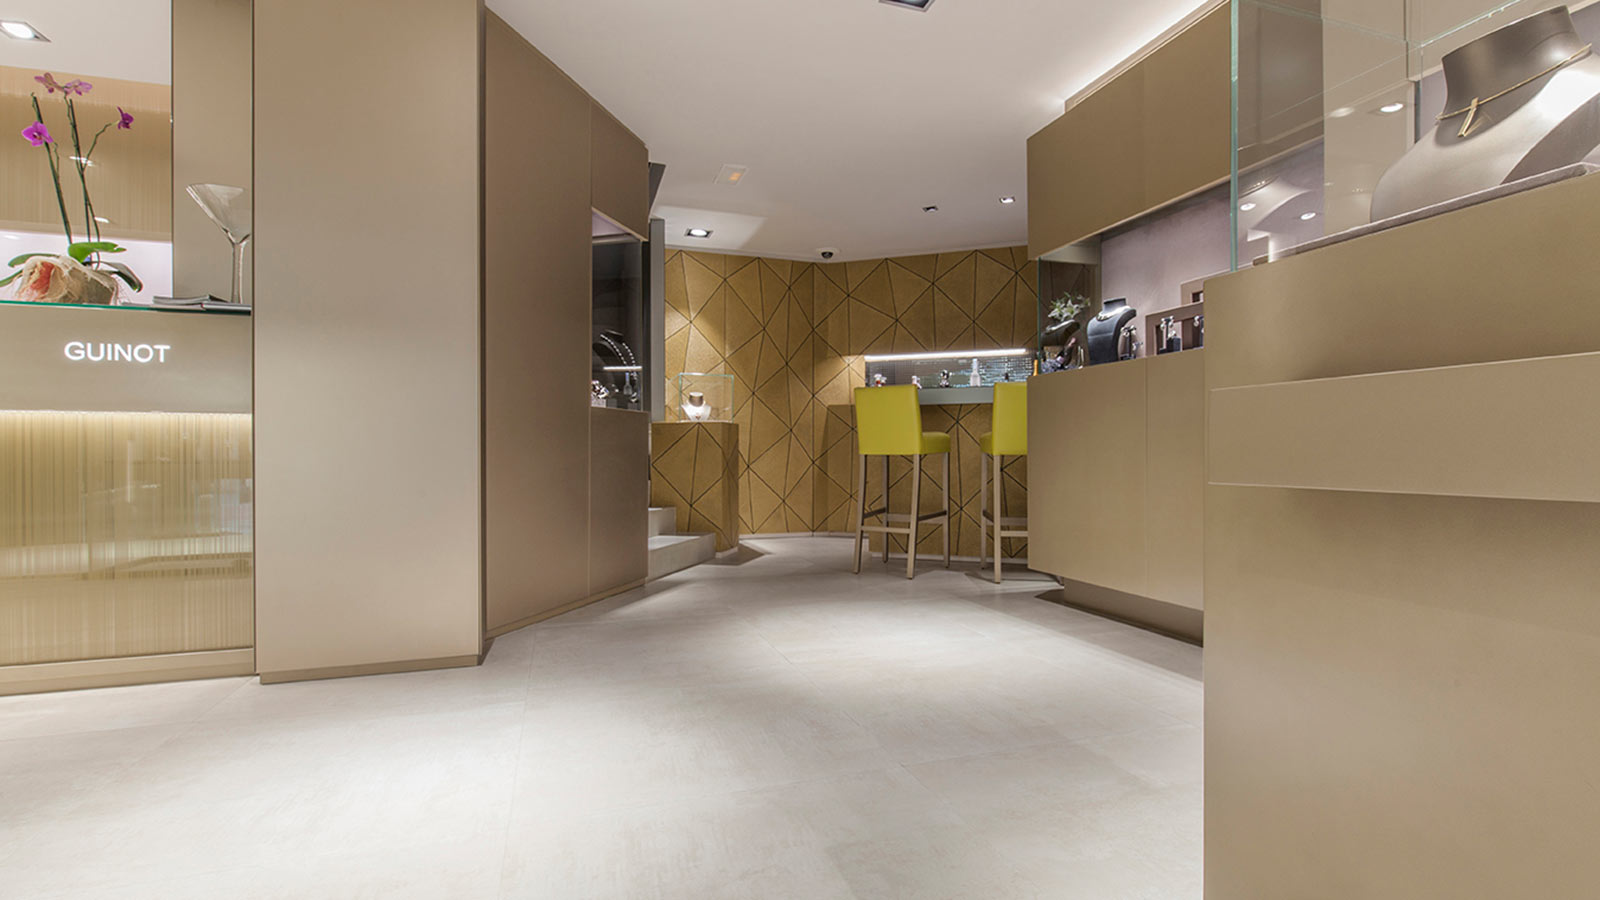 PORCELANOSA Grupo Projects: exclusivity and luxury, also in the materials from Carlos Guinot Jewellery